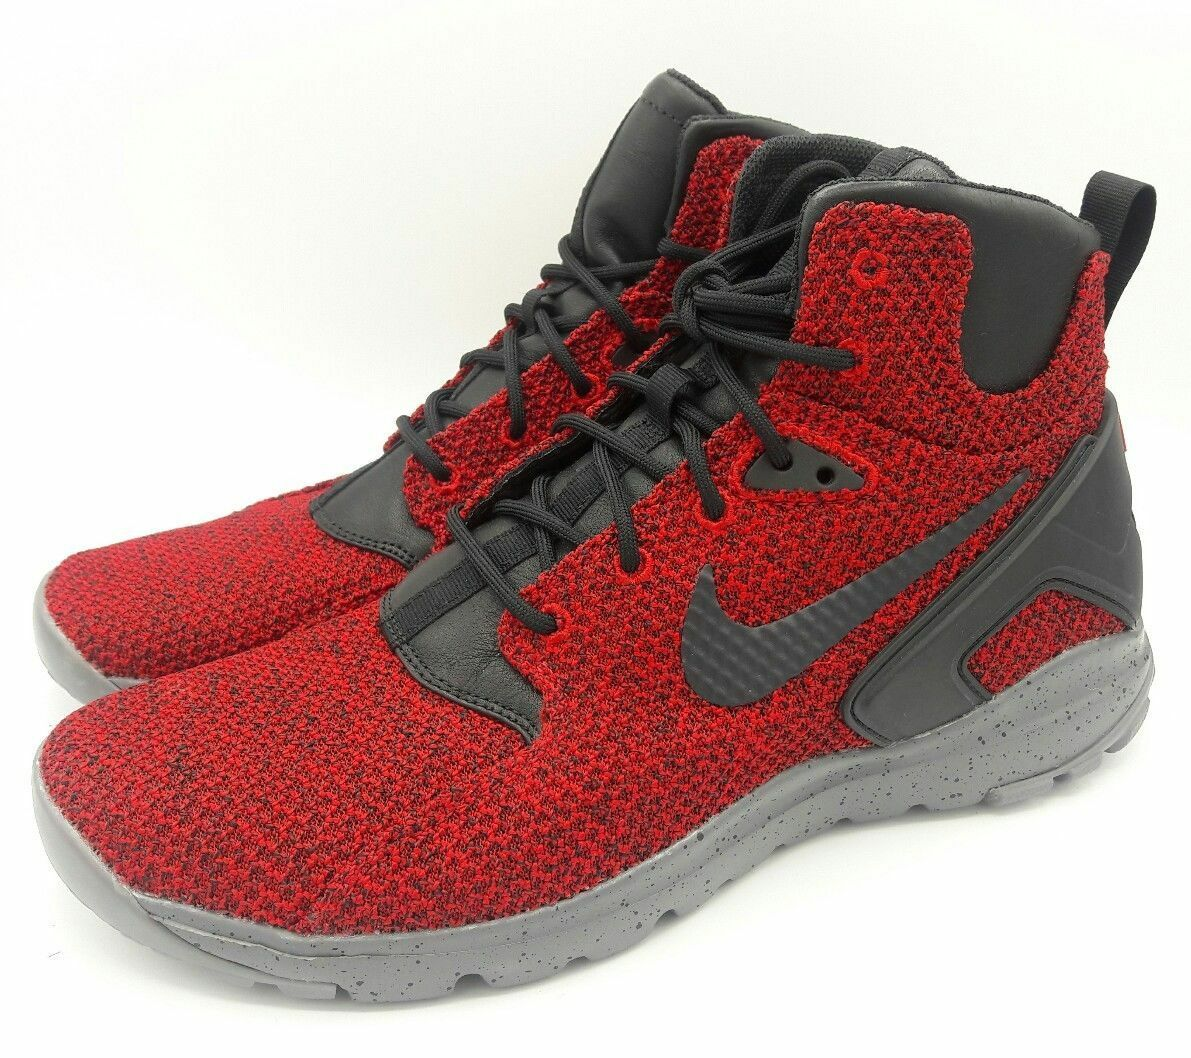 new concept 7524d 56f02 Nike Koth Ultra Mid KJCRD Knit Knit Knit Boots Red Grey Black  819681-600   Mens Size 10 DS 602534